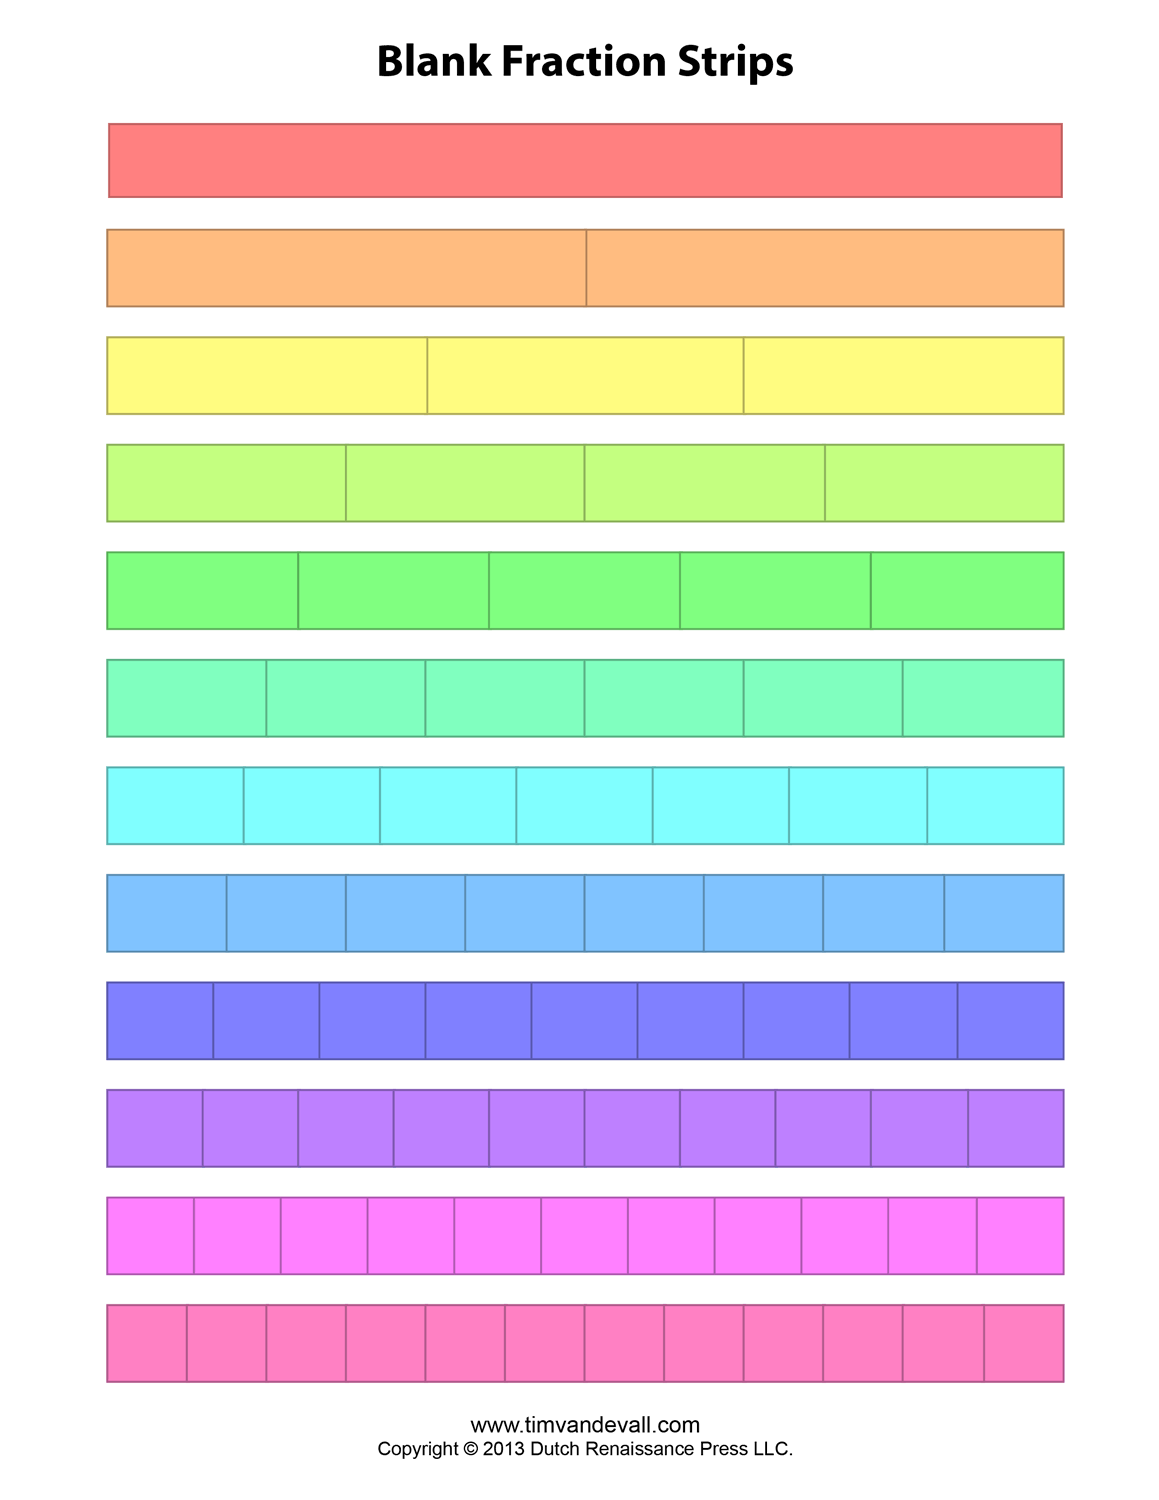 Fraction Strip Templates For Kids